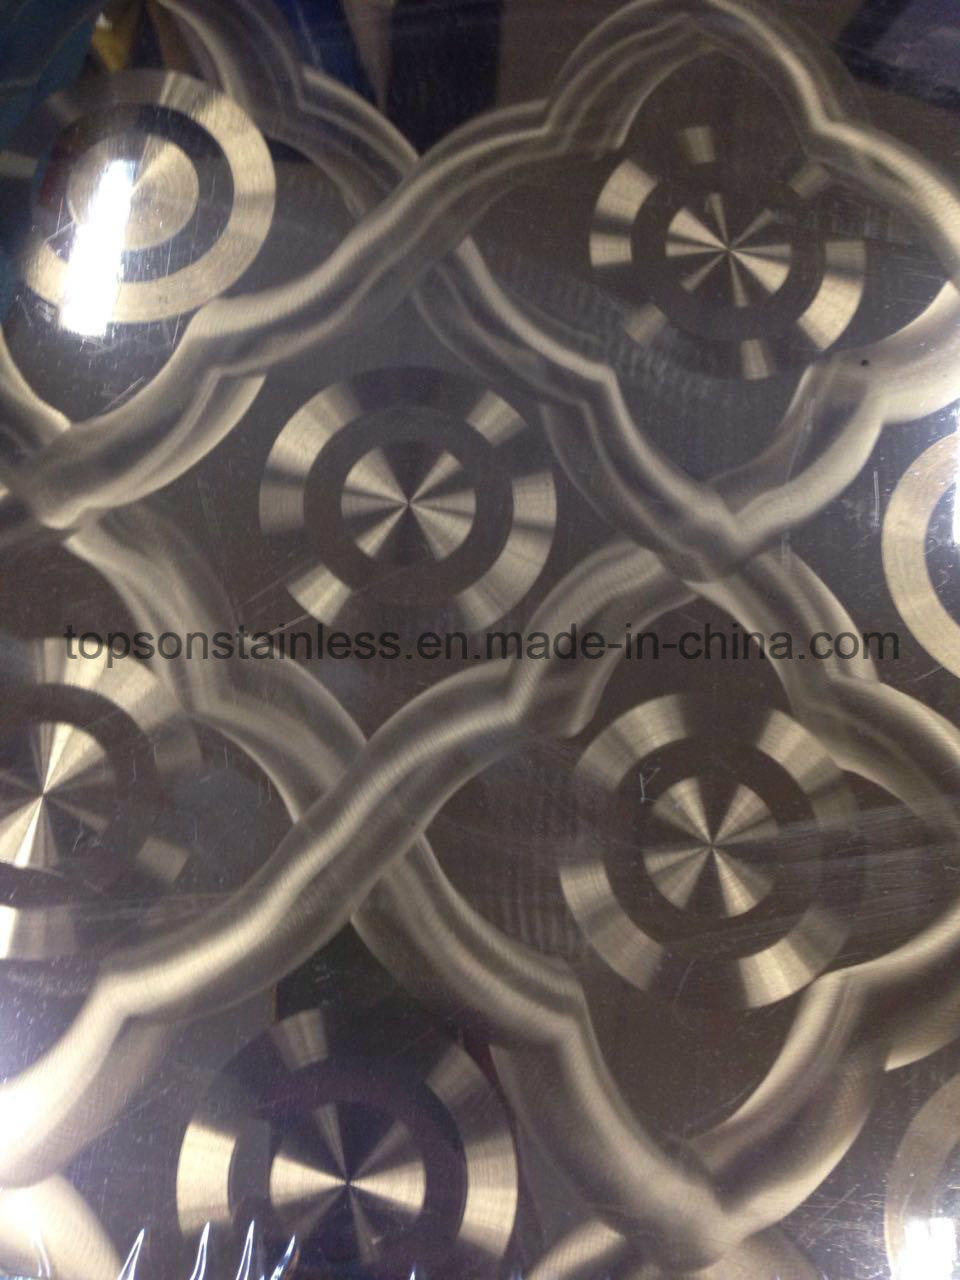 201 304 316 Decorative Stainless Steel Plate with Laser Finish